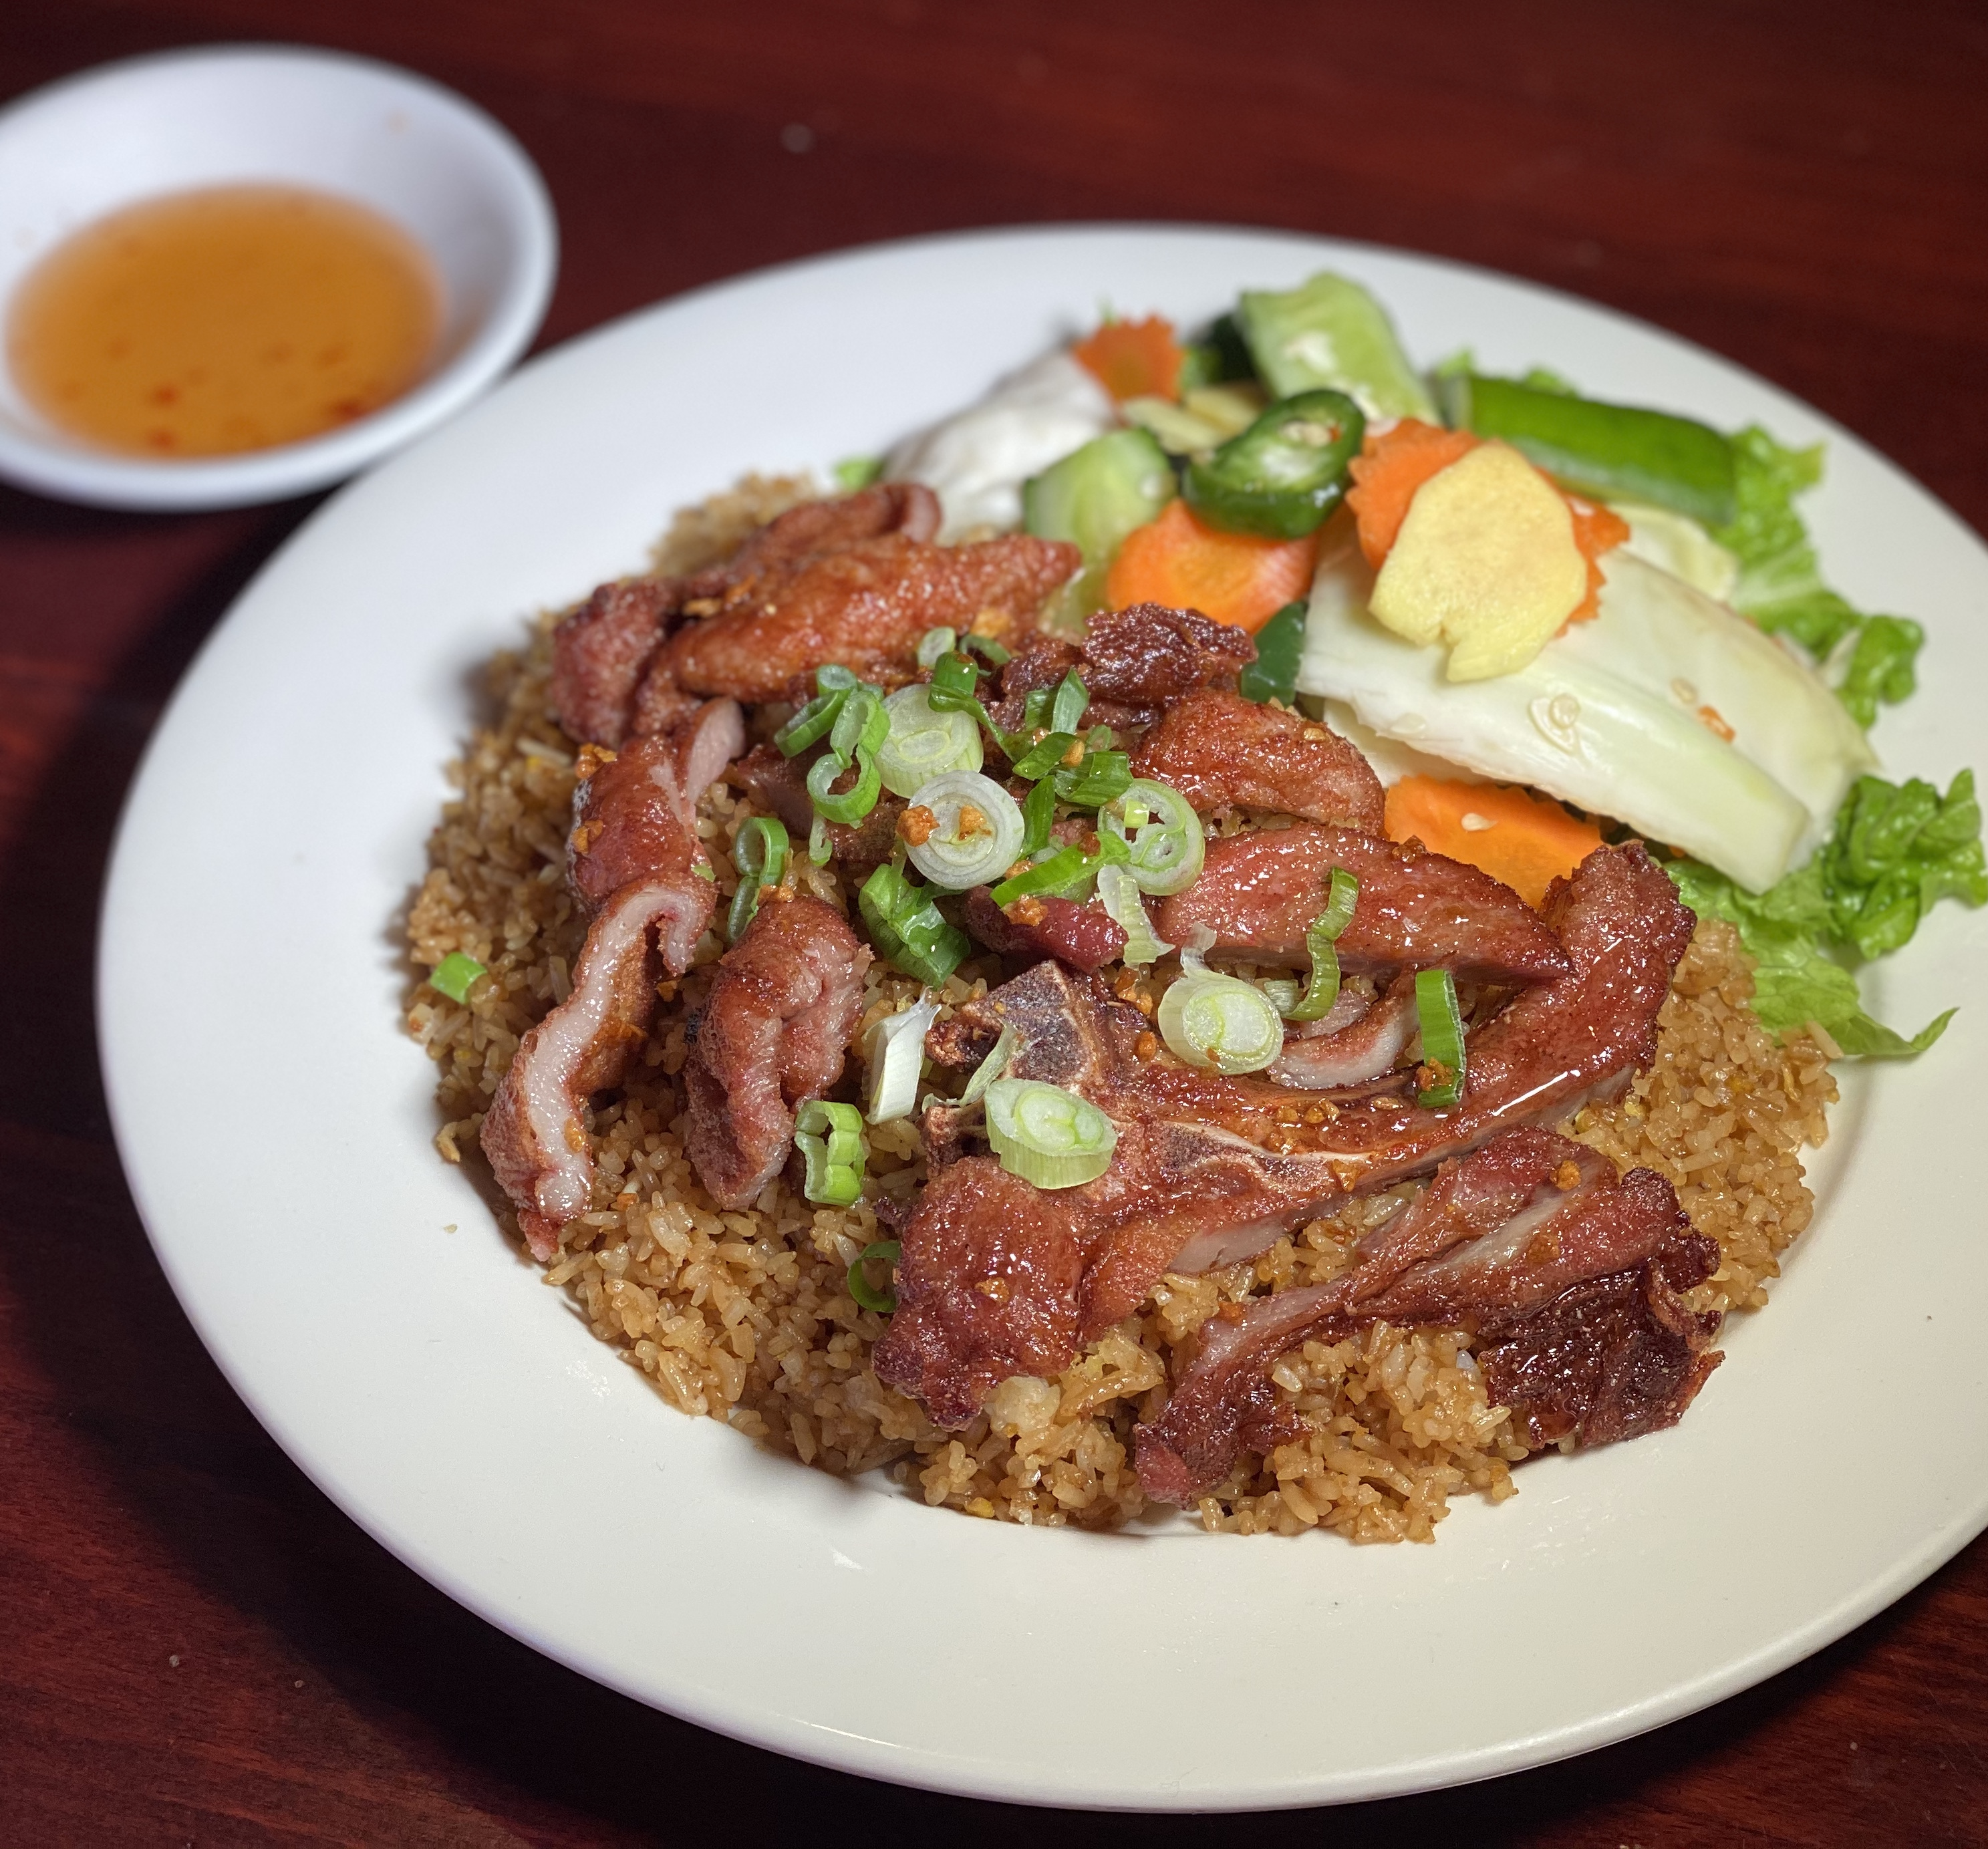 Fried Rice with Crispy Pork Chop